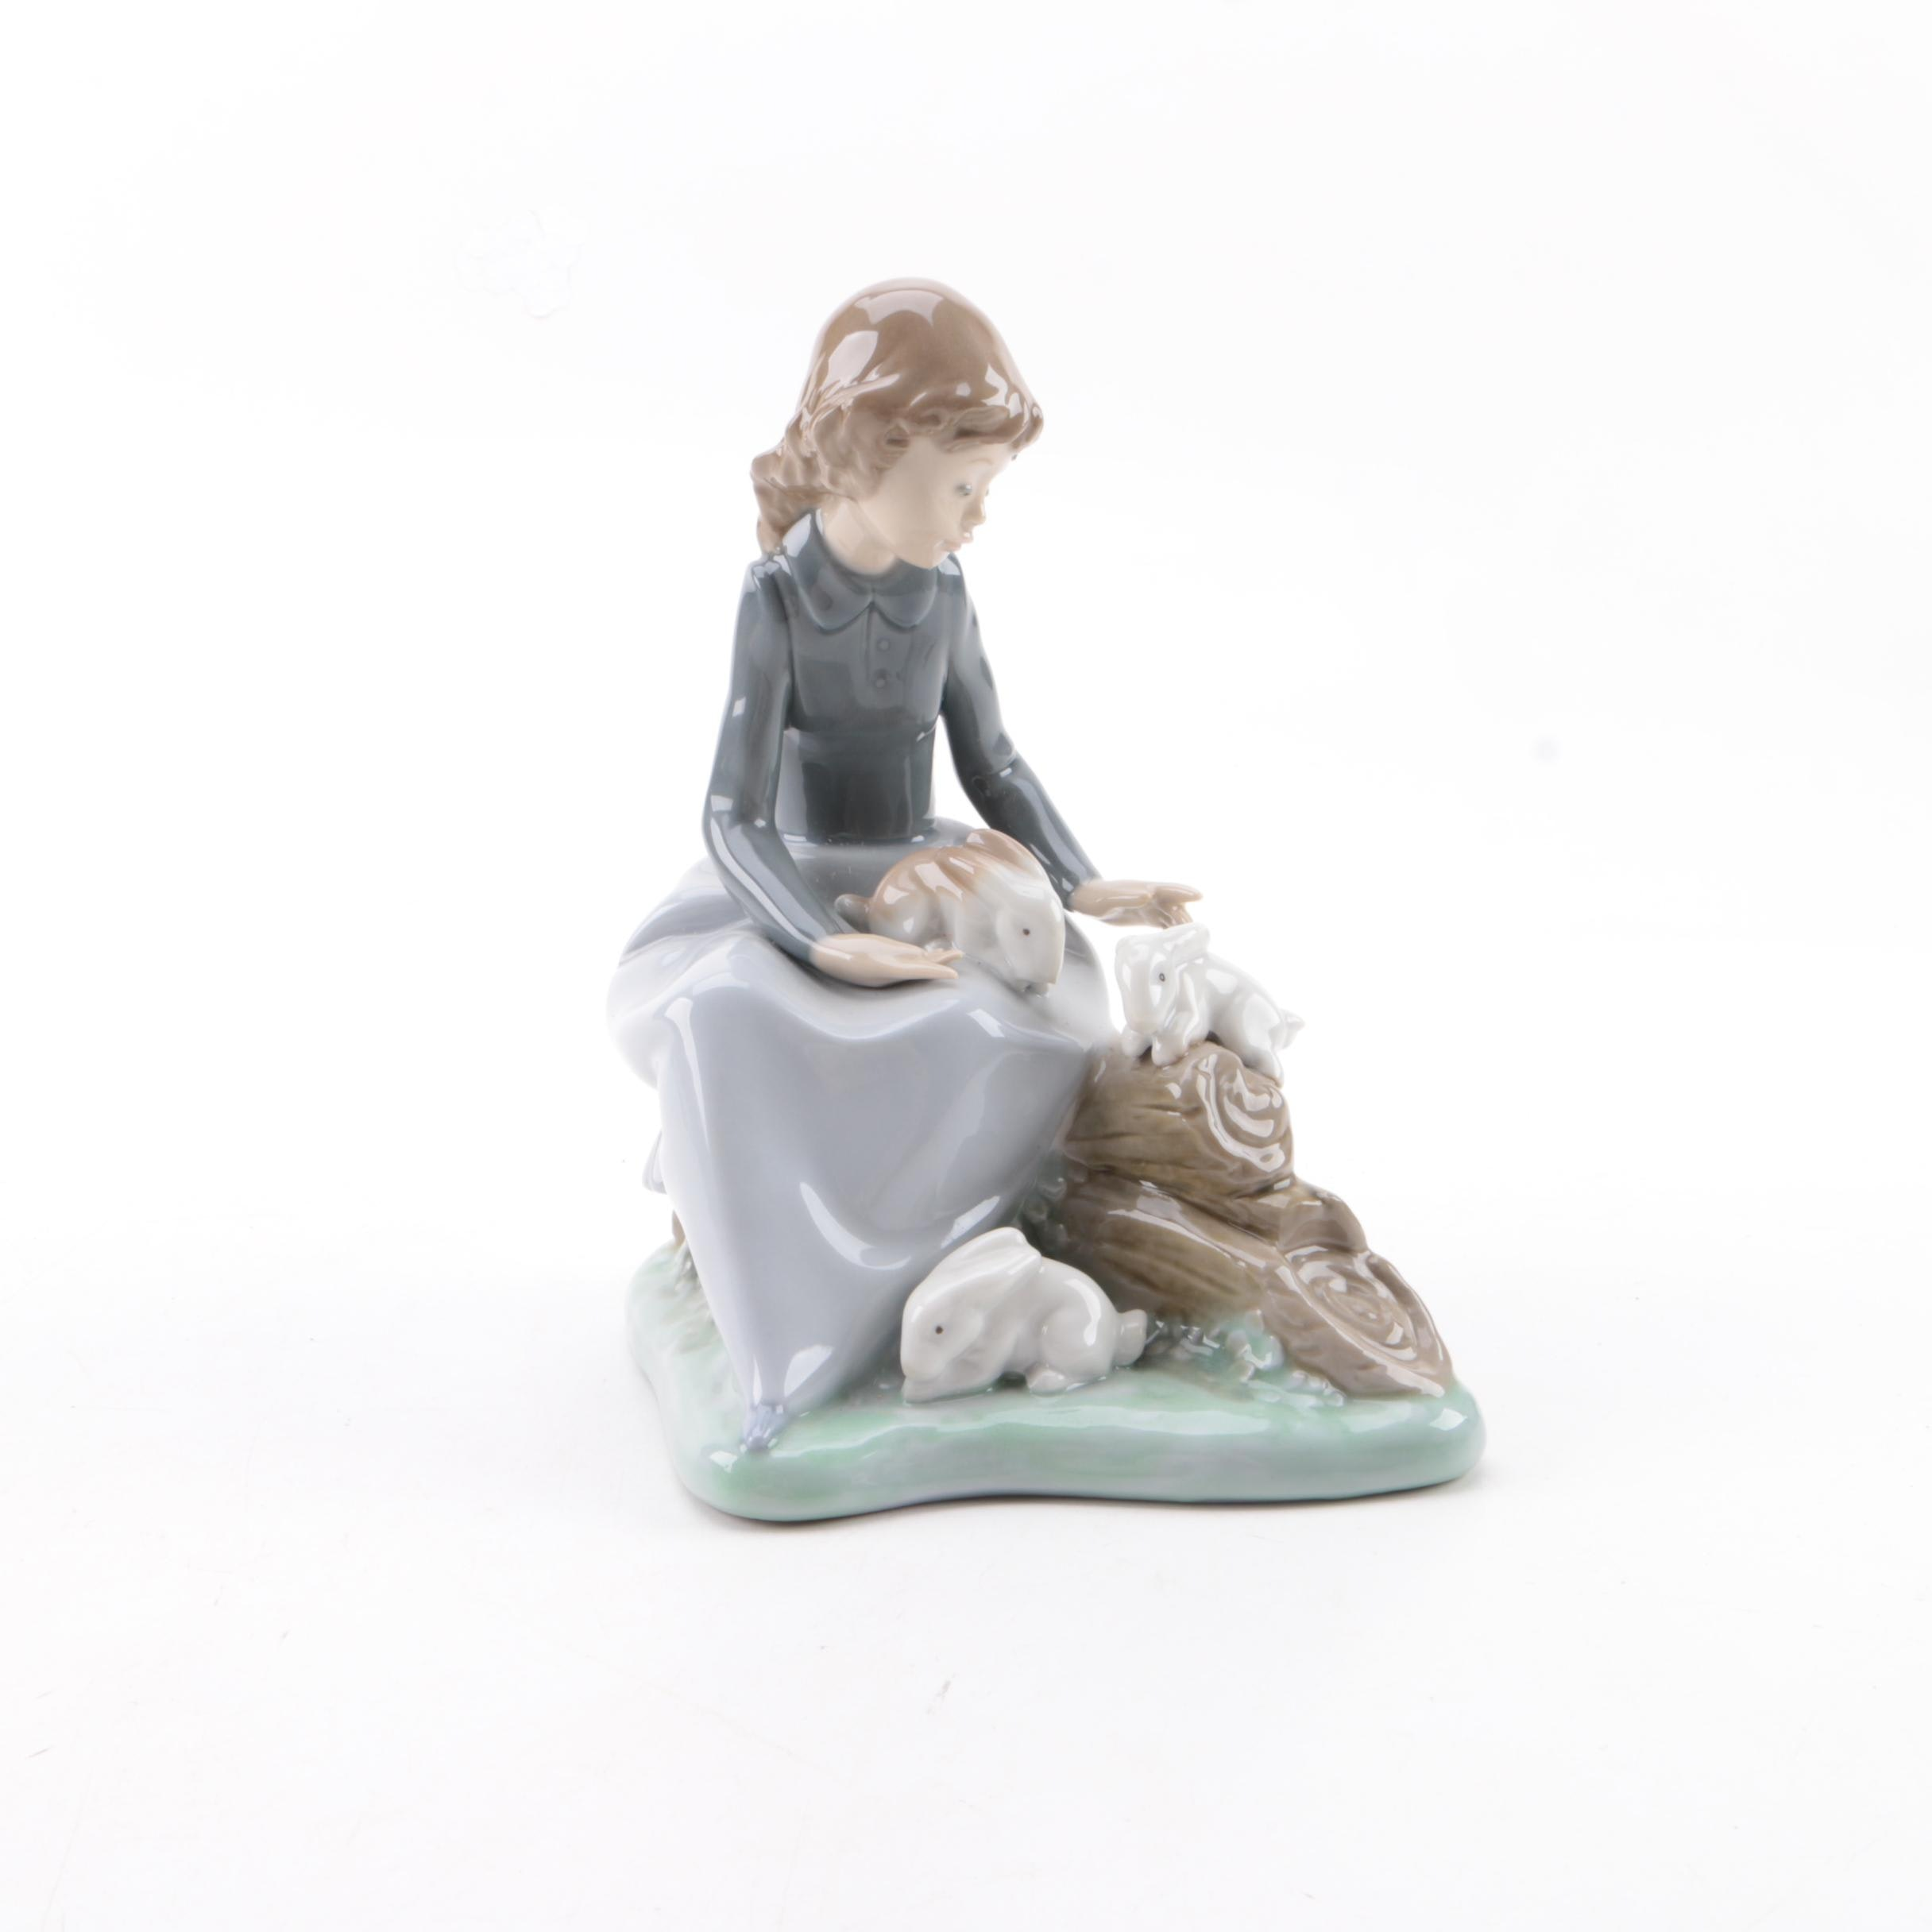 "Nao ""Girl with Bunny Rabbits Figurine by Lladro"